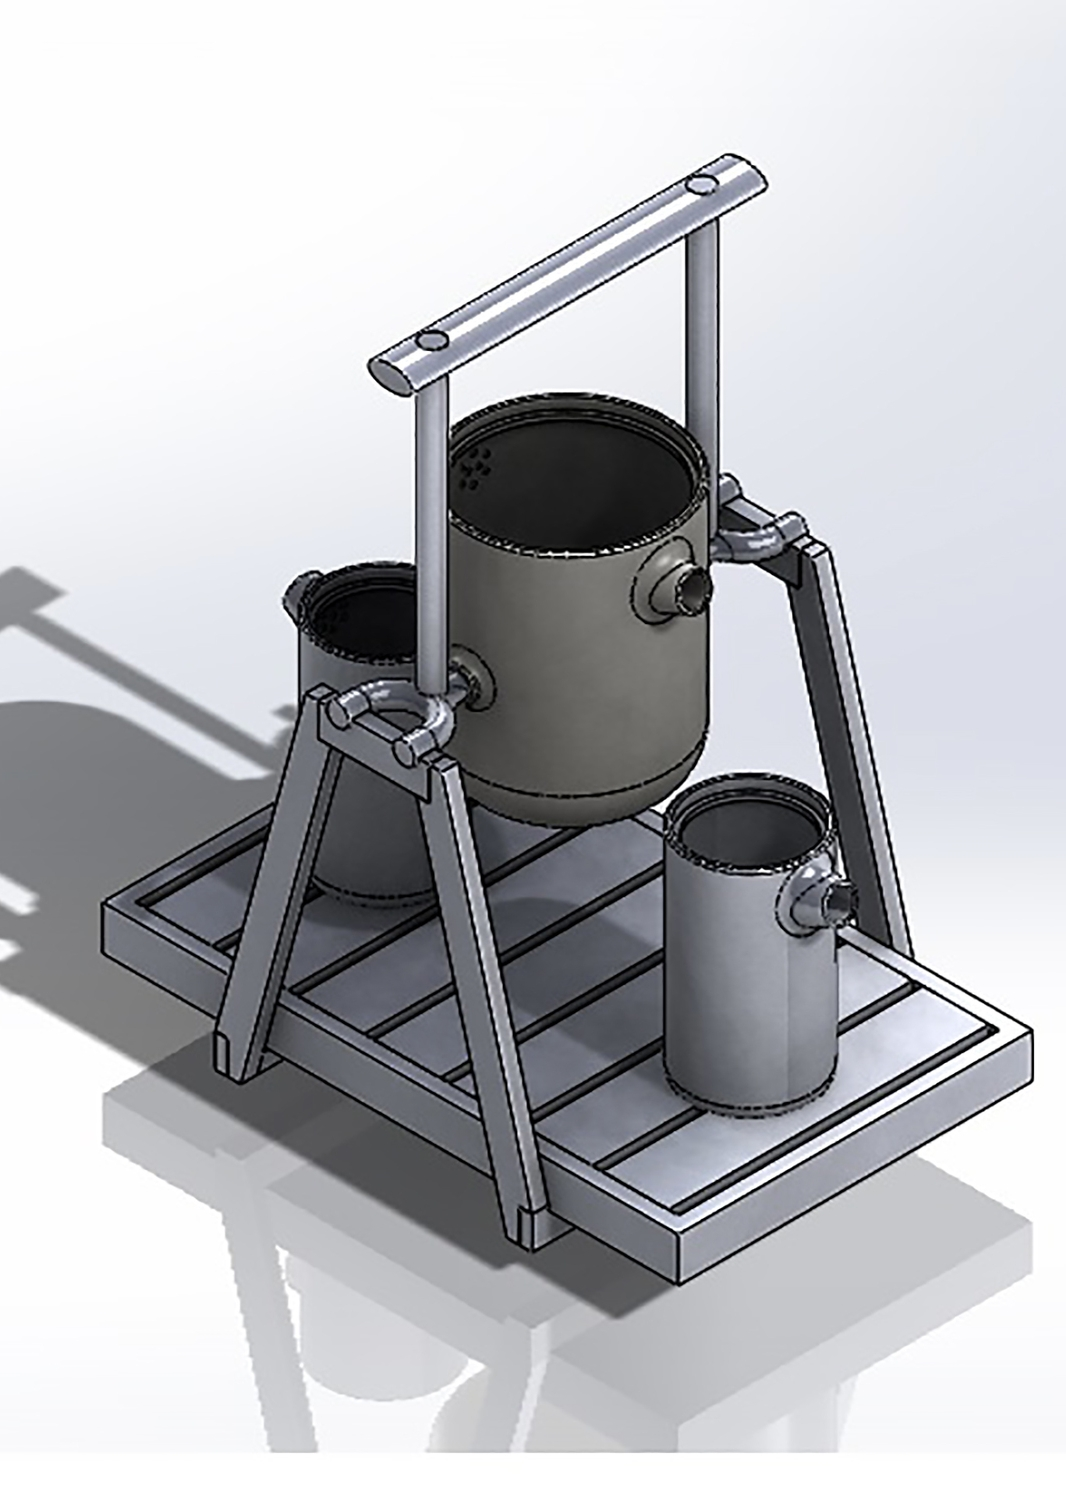 The model was drawn and tested in Solidworks before a final prototype was made